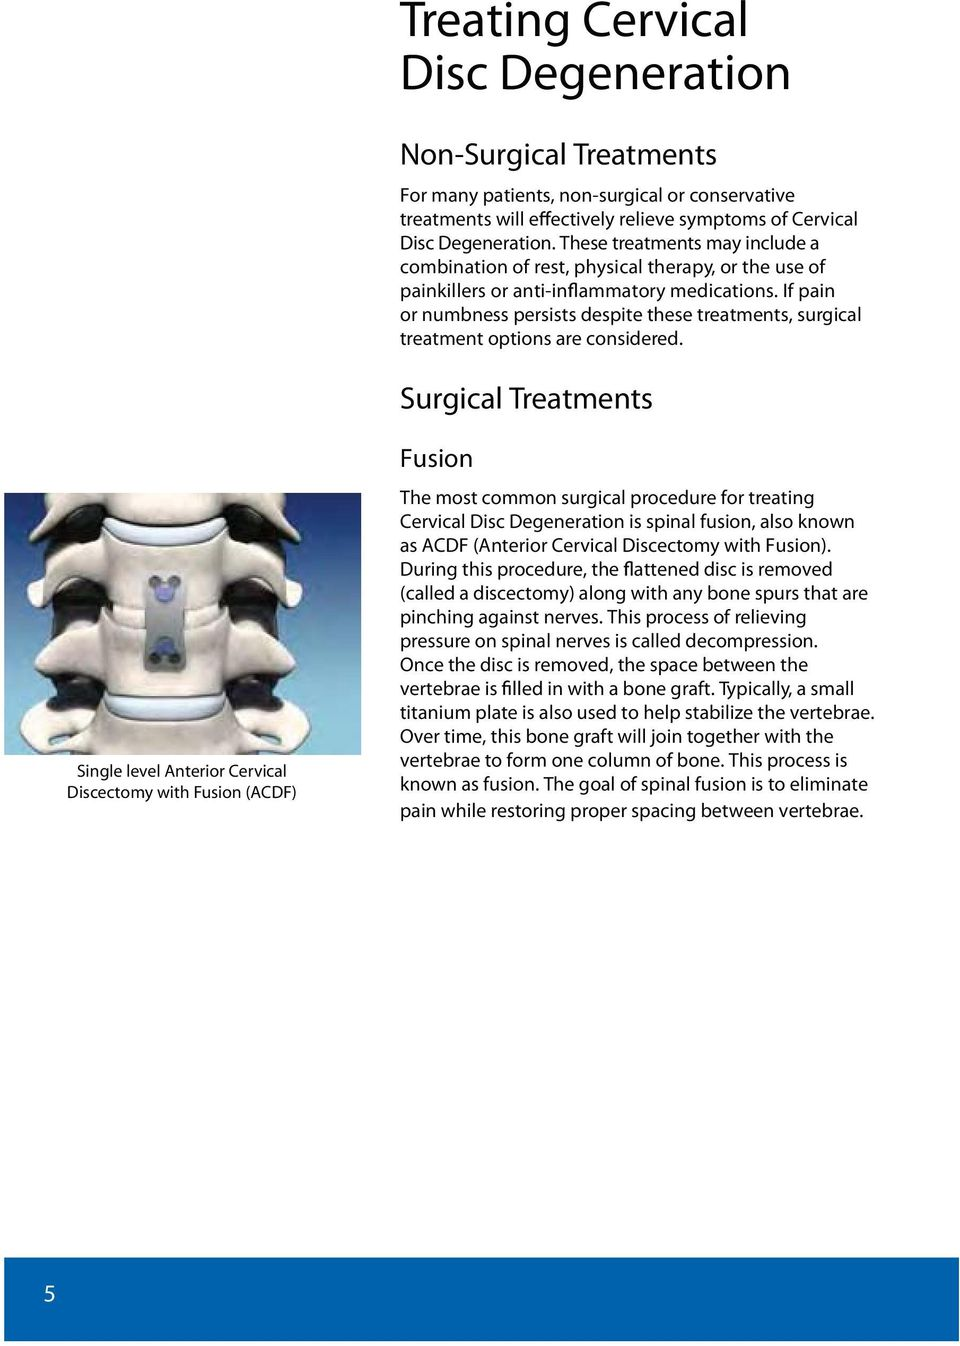 If pain or numbness persists despite these treatments, surgical treatment options are considered.